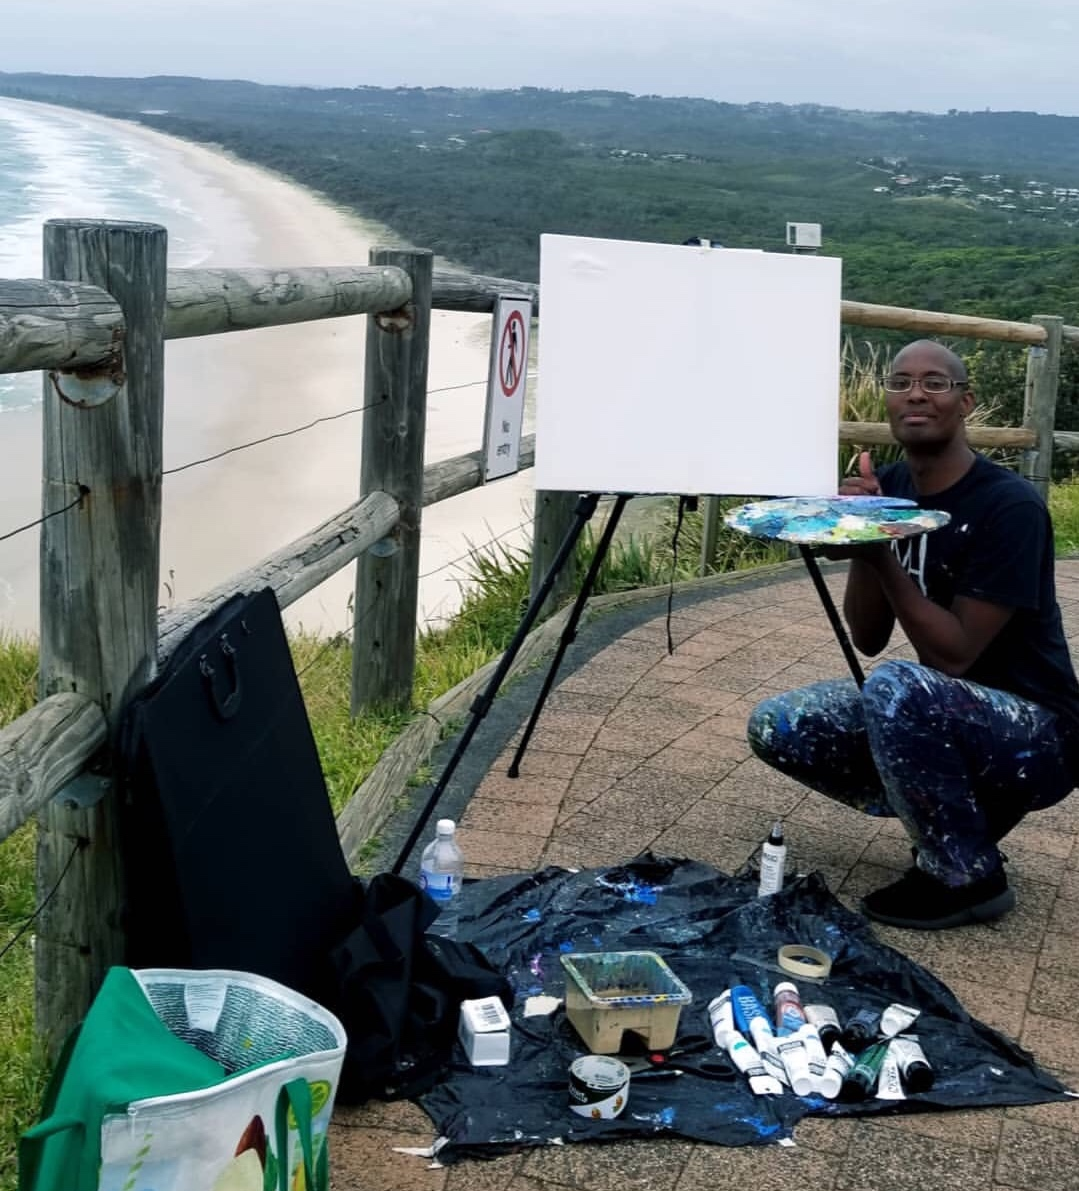 Me setting up my display art project at Byron Bay Cape conversation view/Tallow Beach in Byron Bay, NSW.